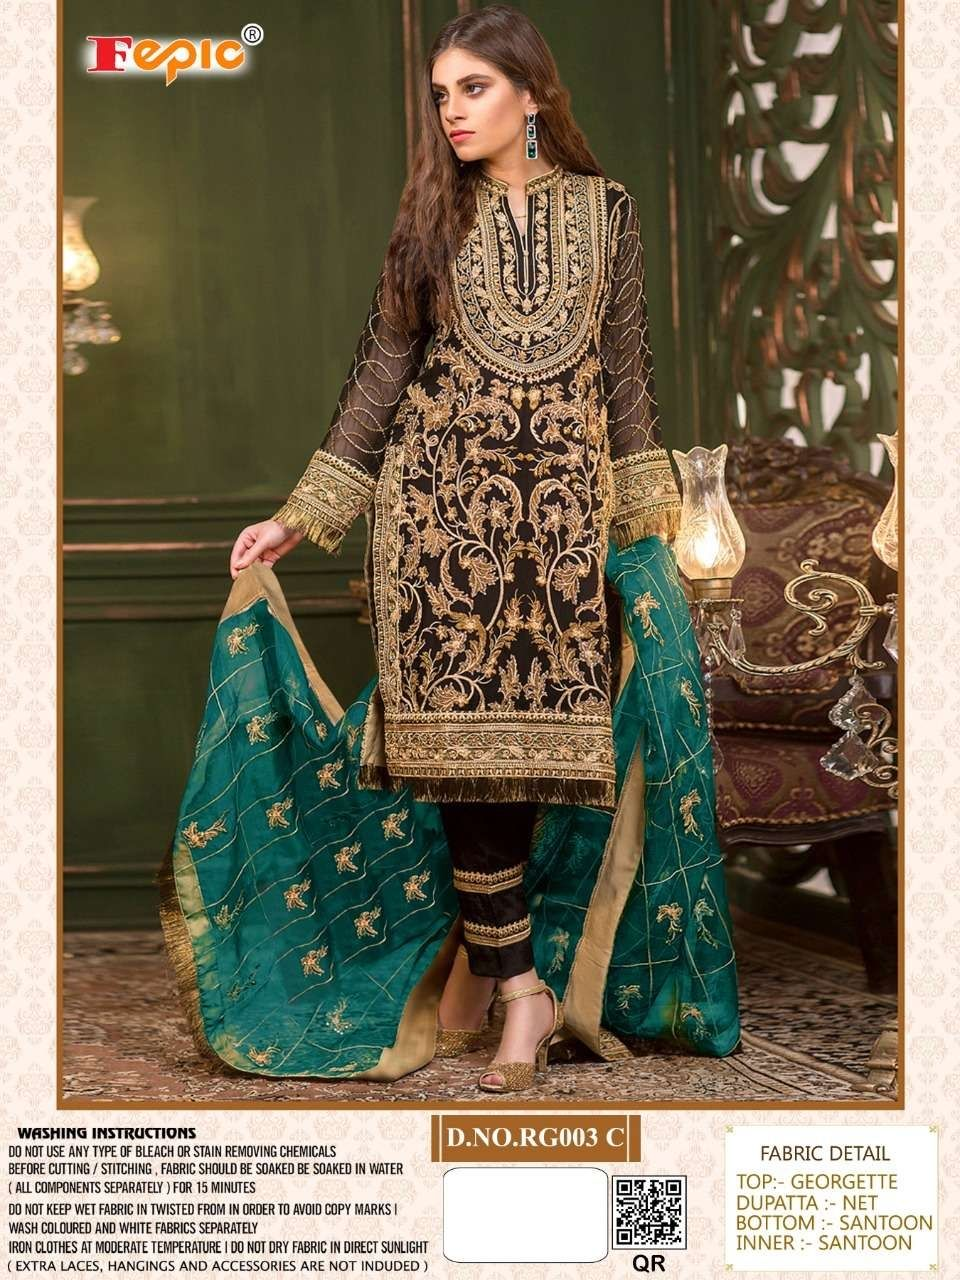 FEPIC SHARE FEPIC READY TO SHIP SINGLE SALWAR KAMEEZ 16-OCT-2021 2